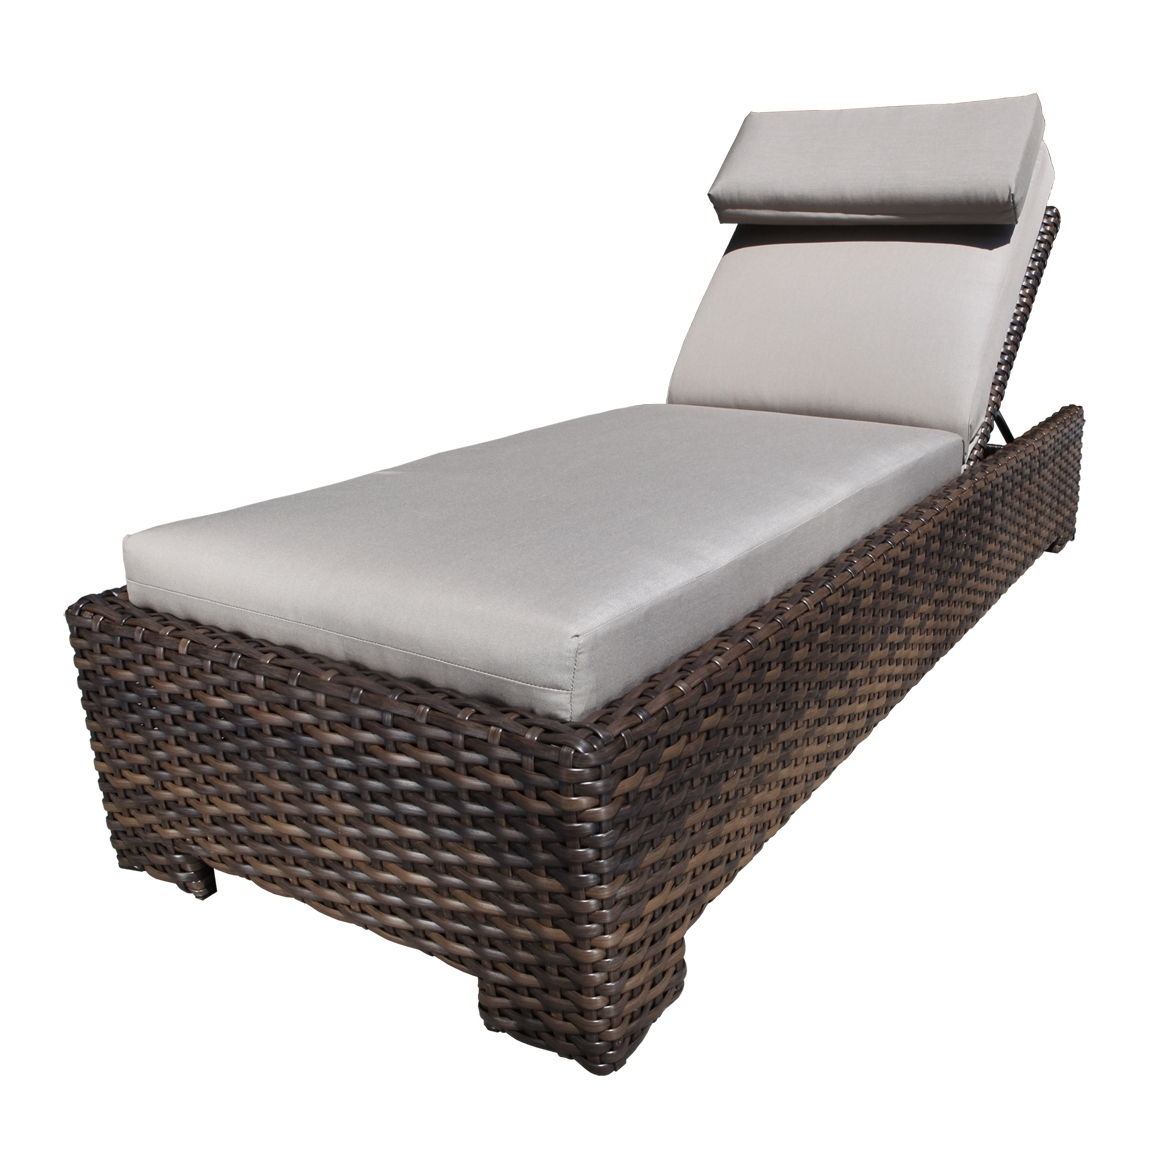 Most Recent Patio Furniture Lounge Chair • Lounge Chairs Ideas Intended For Outdoor Chaises (View 5 of 15)